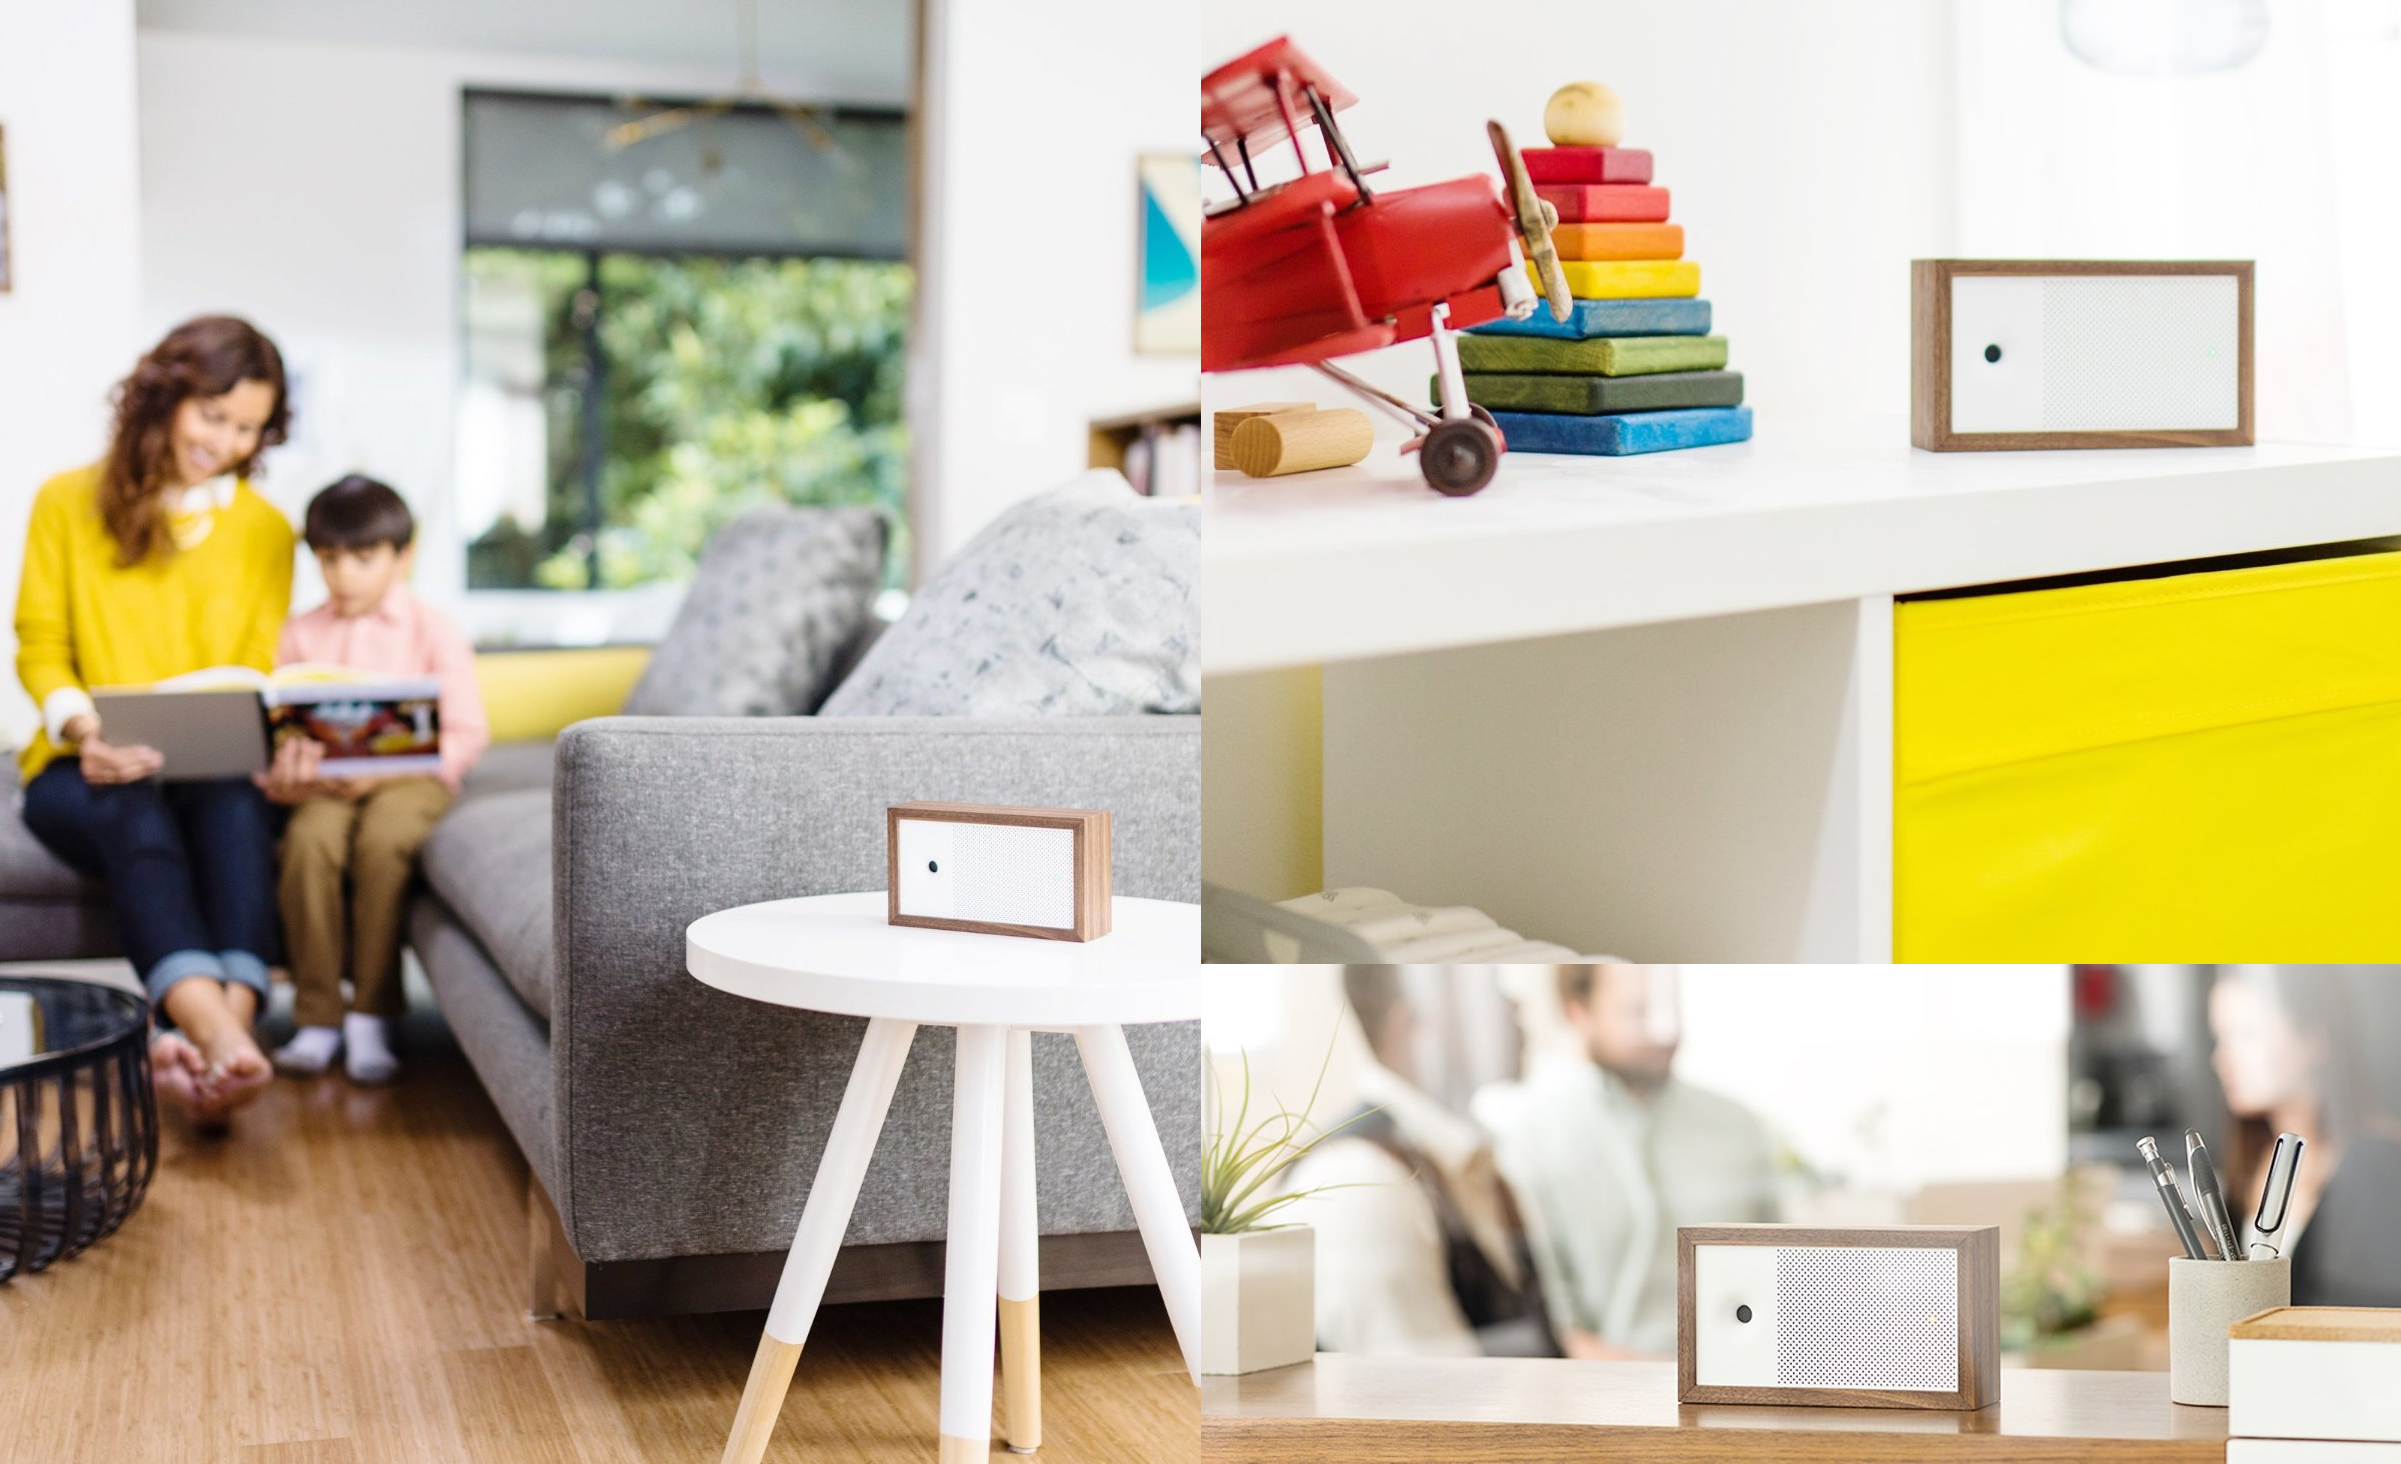 Awair- Smart Air Quality Monitor with LED display